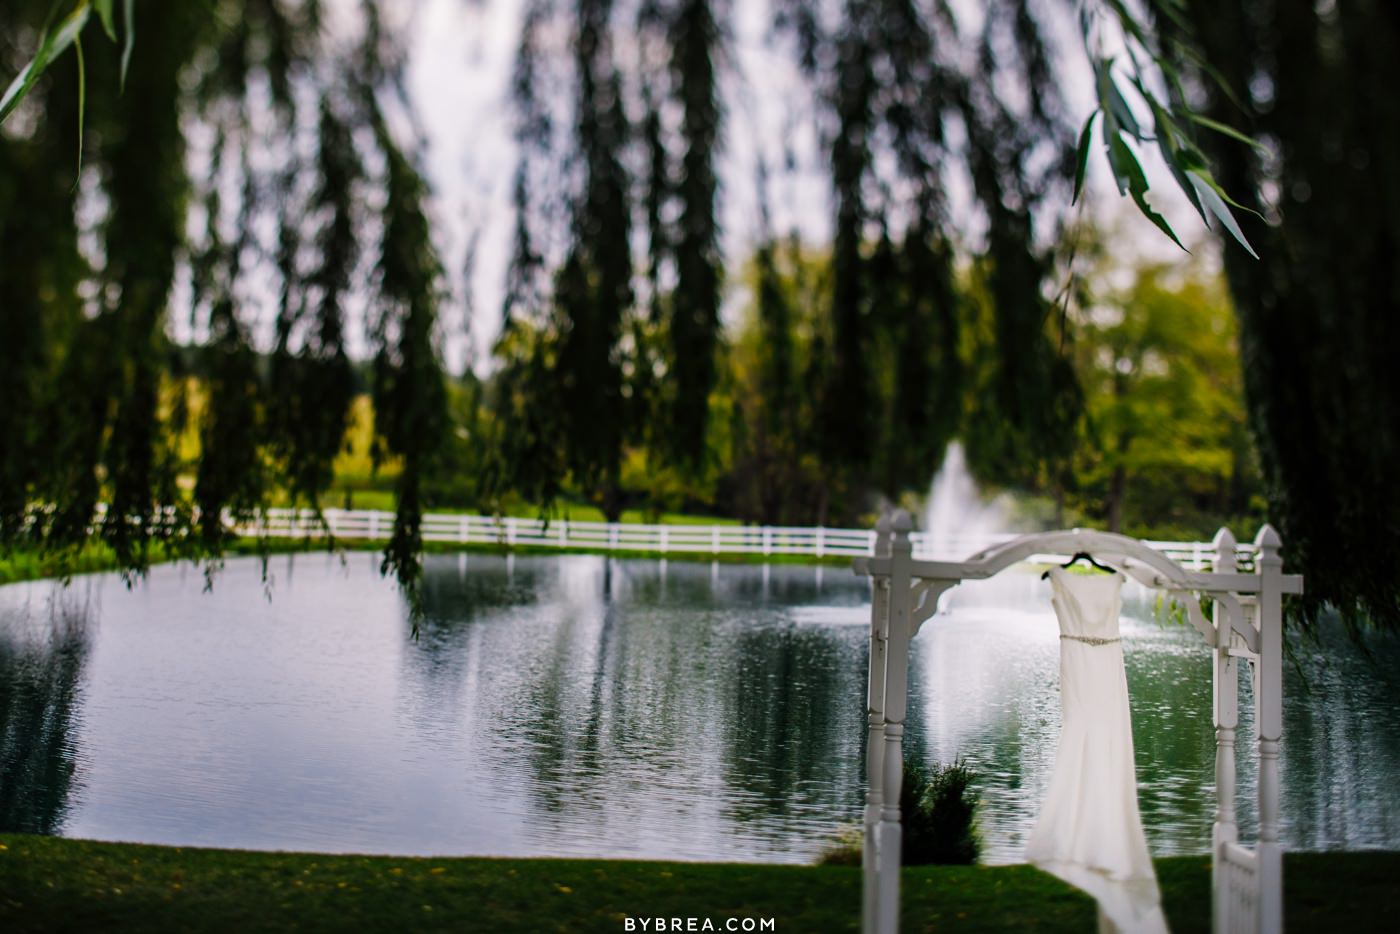 Photo of bride's wedding dress by pond at Pond View Farm in White Hall, Maryland